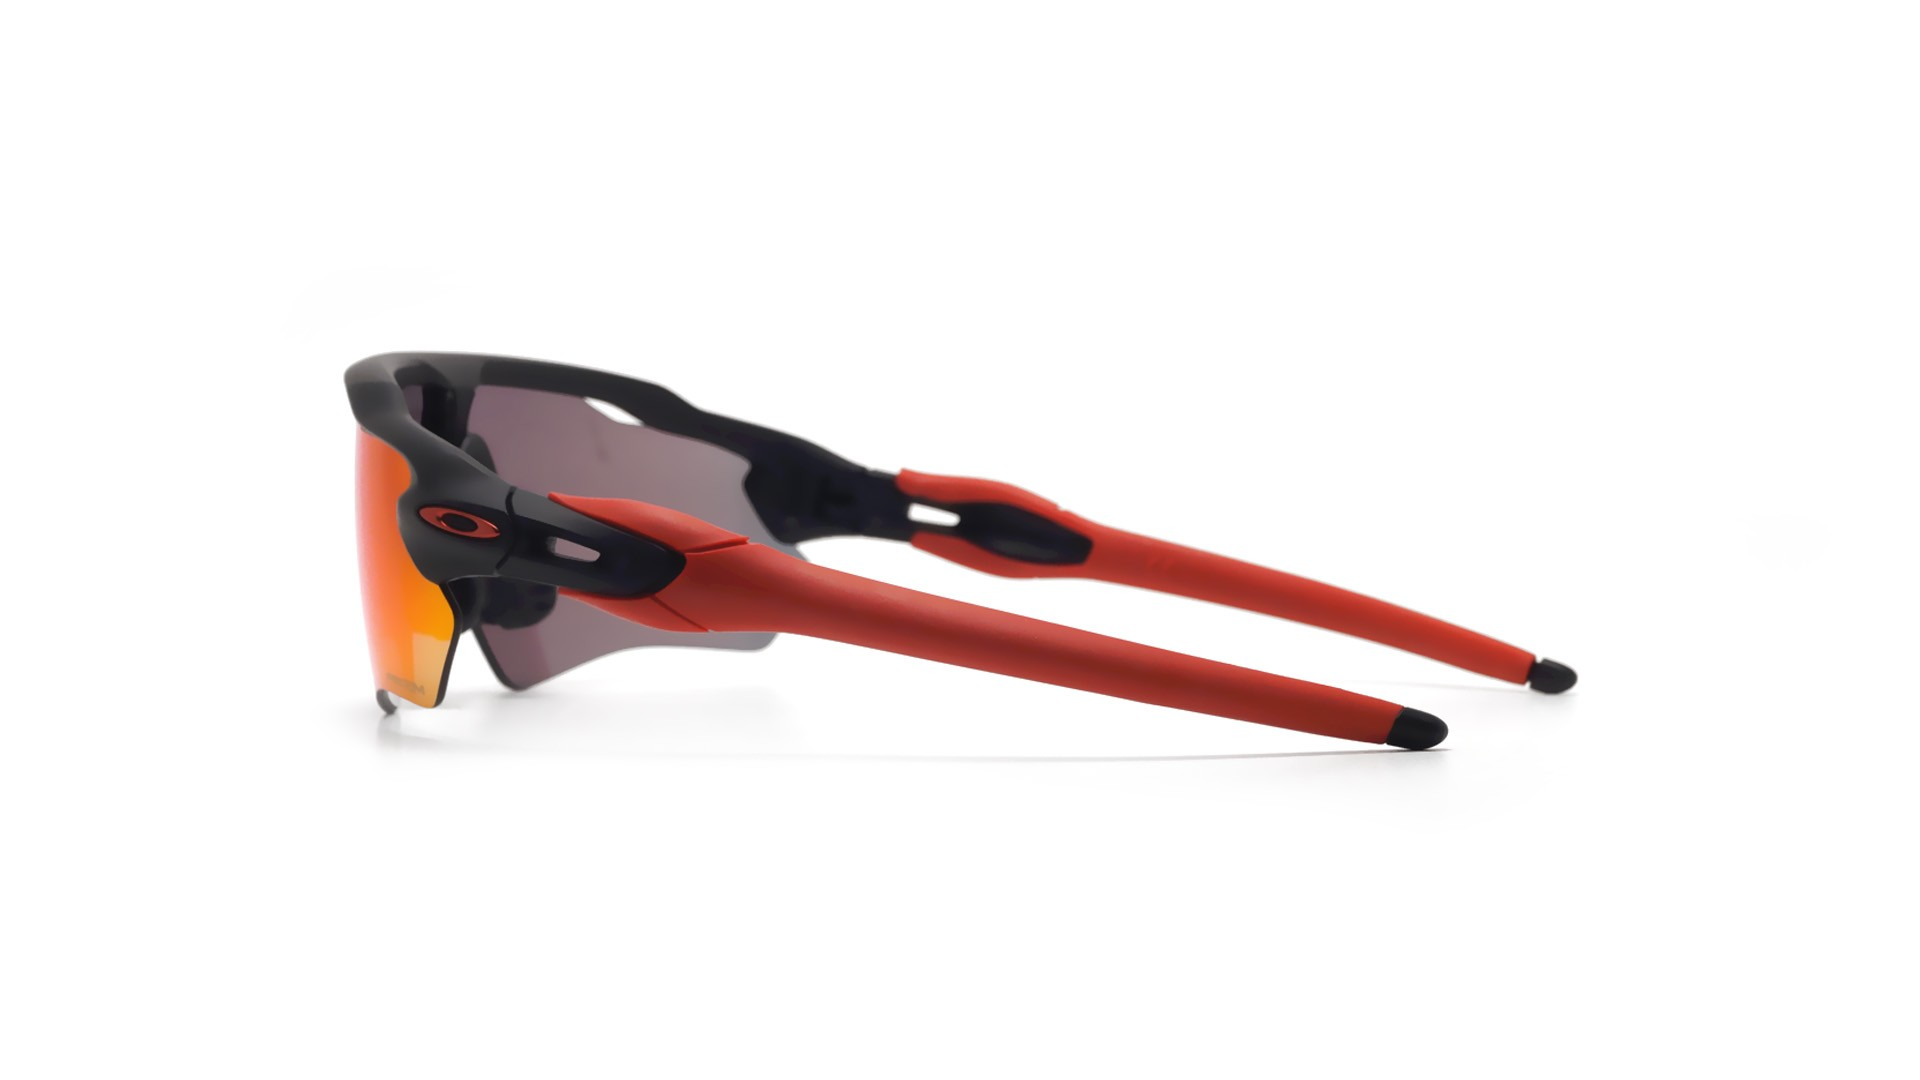 c87db08c40 Sunglasses Oakley Radar ev Xs path Black Matte Prizm OJ9001 06 46-142 Junior  Mirror